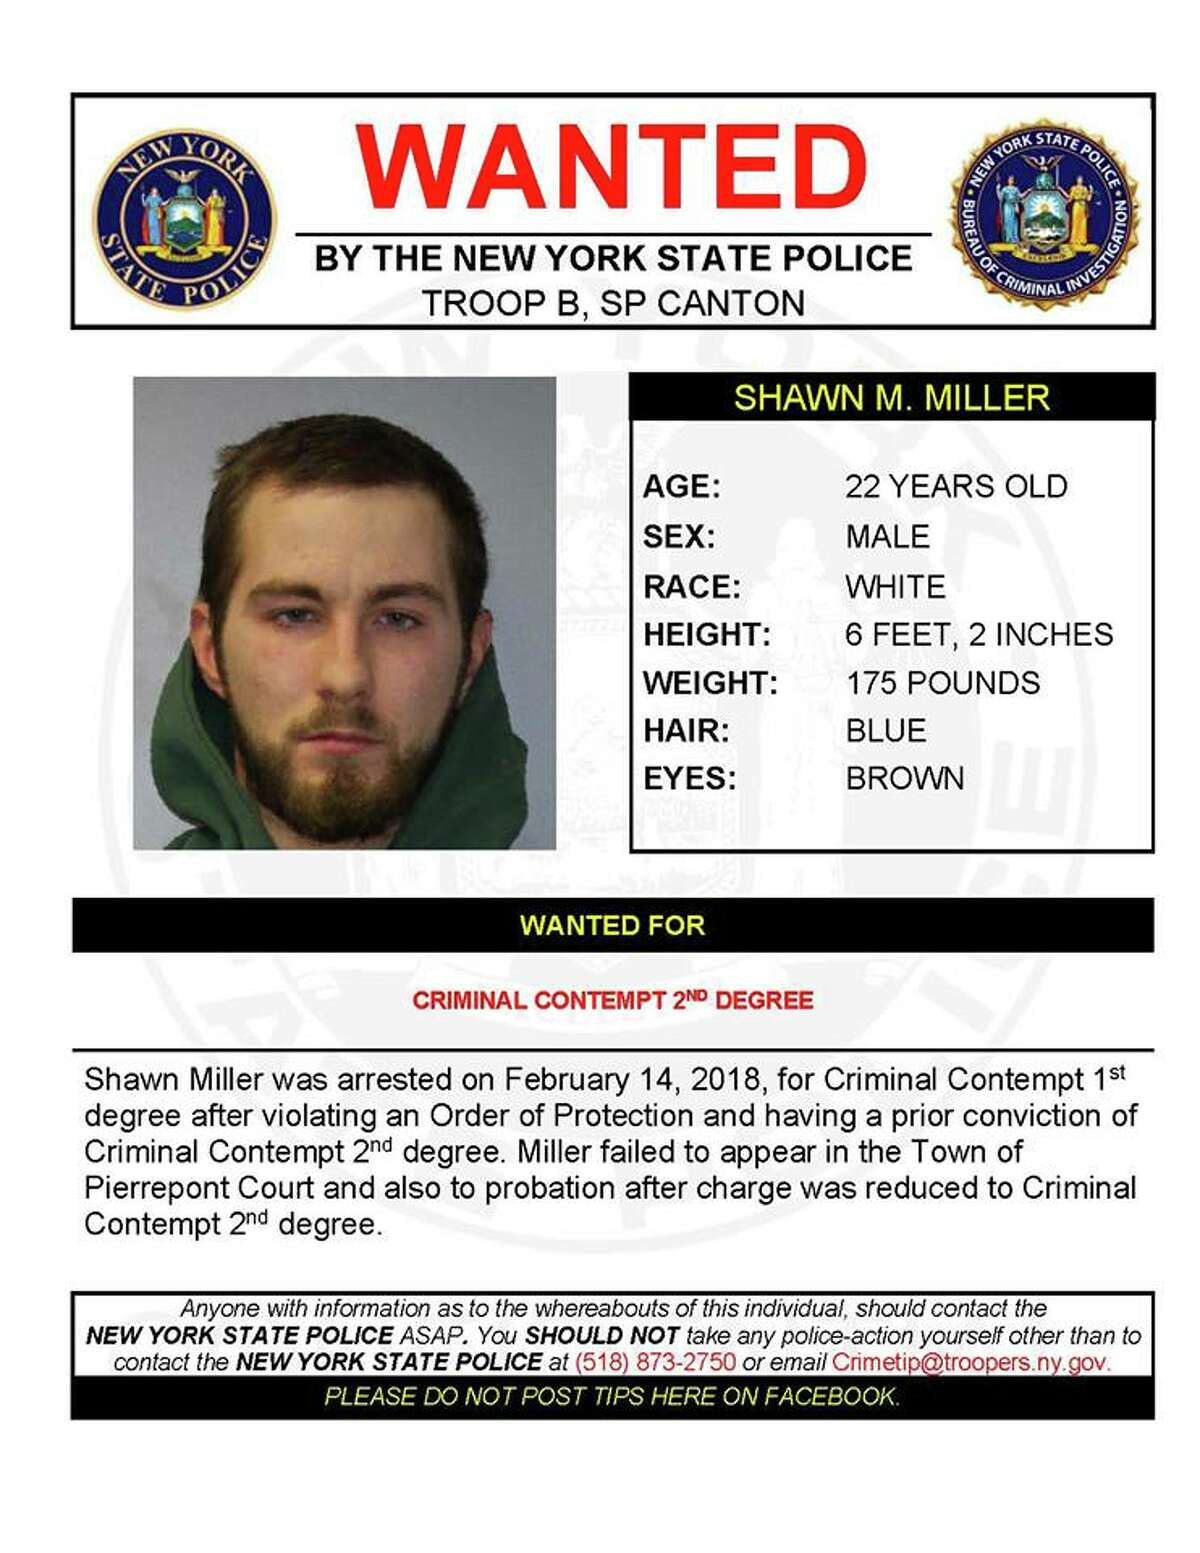 Shawn Miller, 22, was arrested on Feb. 14, 2018, for criminal contempt after violating an order of protection and having a prior conviction of criminal contempt, State Police said. Miller failed to appear in the Town of Pierrepont Court, St. Lawrence County, and also to probation after the charge was reduced.